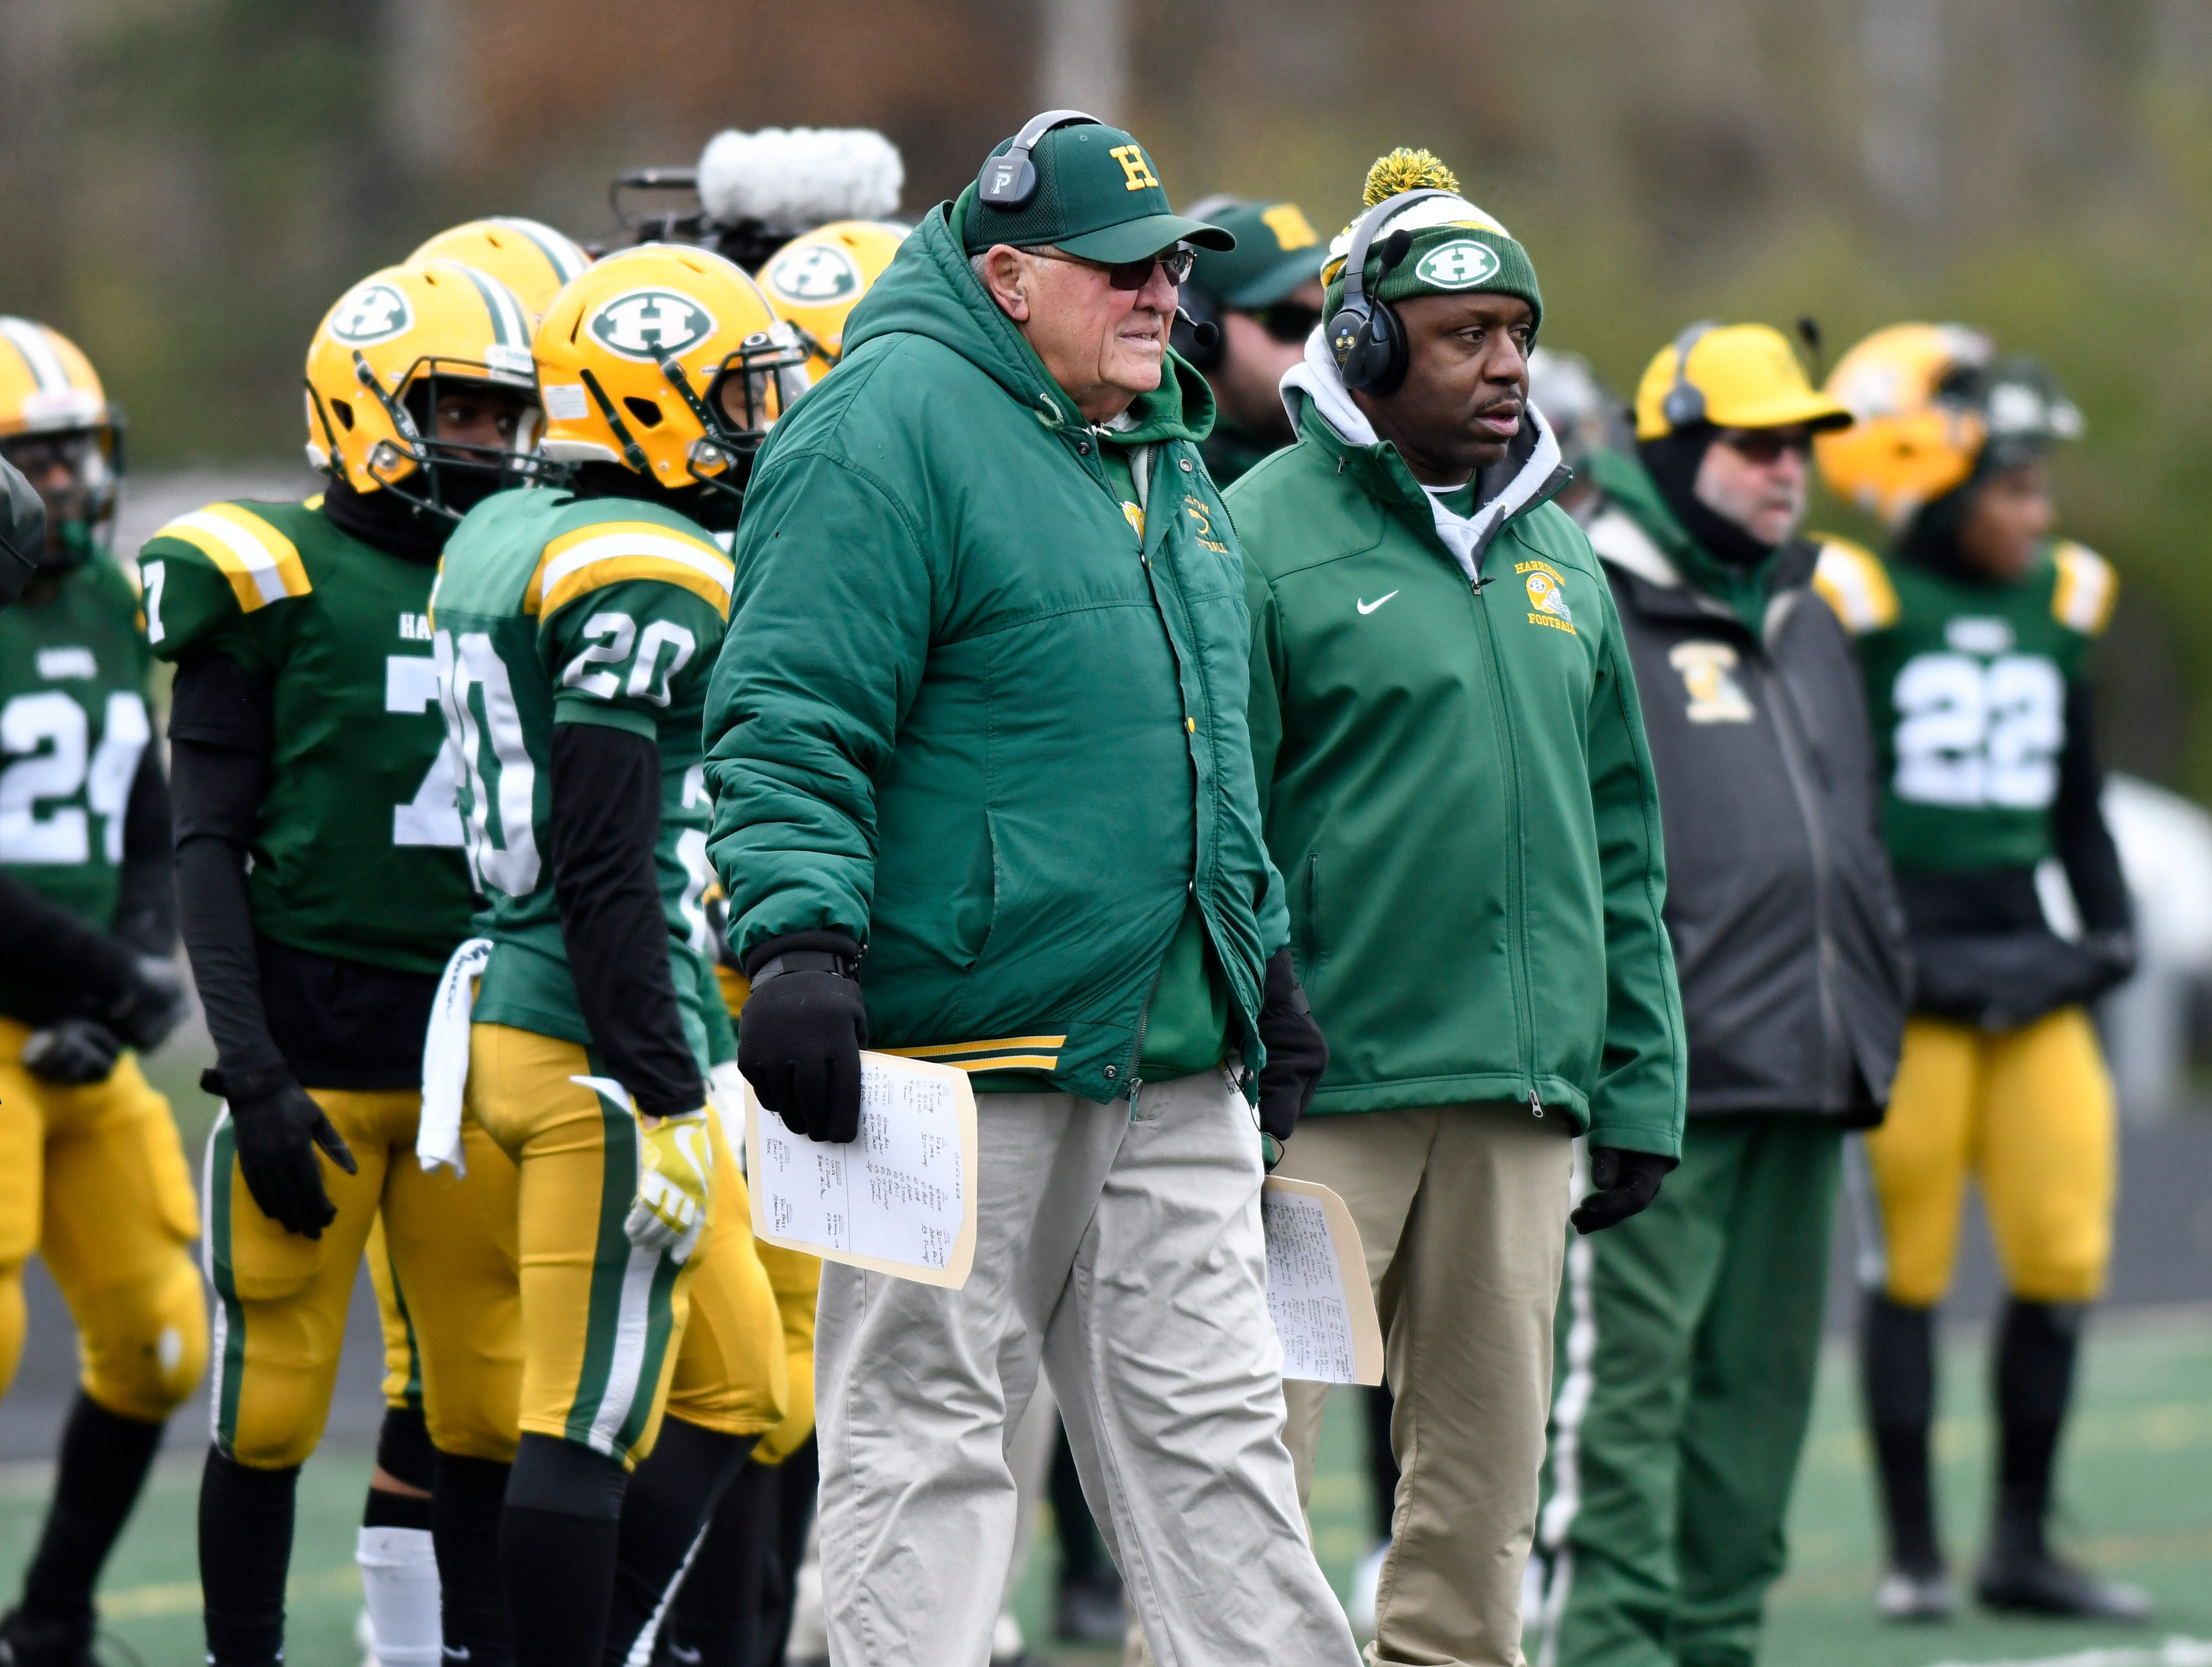 Farmington Hills Harrison football head coach John Herrington, center, watches his team play against Chelsea during the first quarter Saturday.